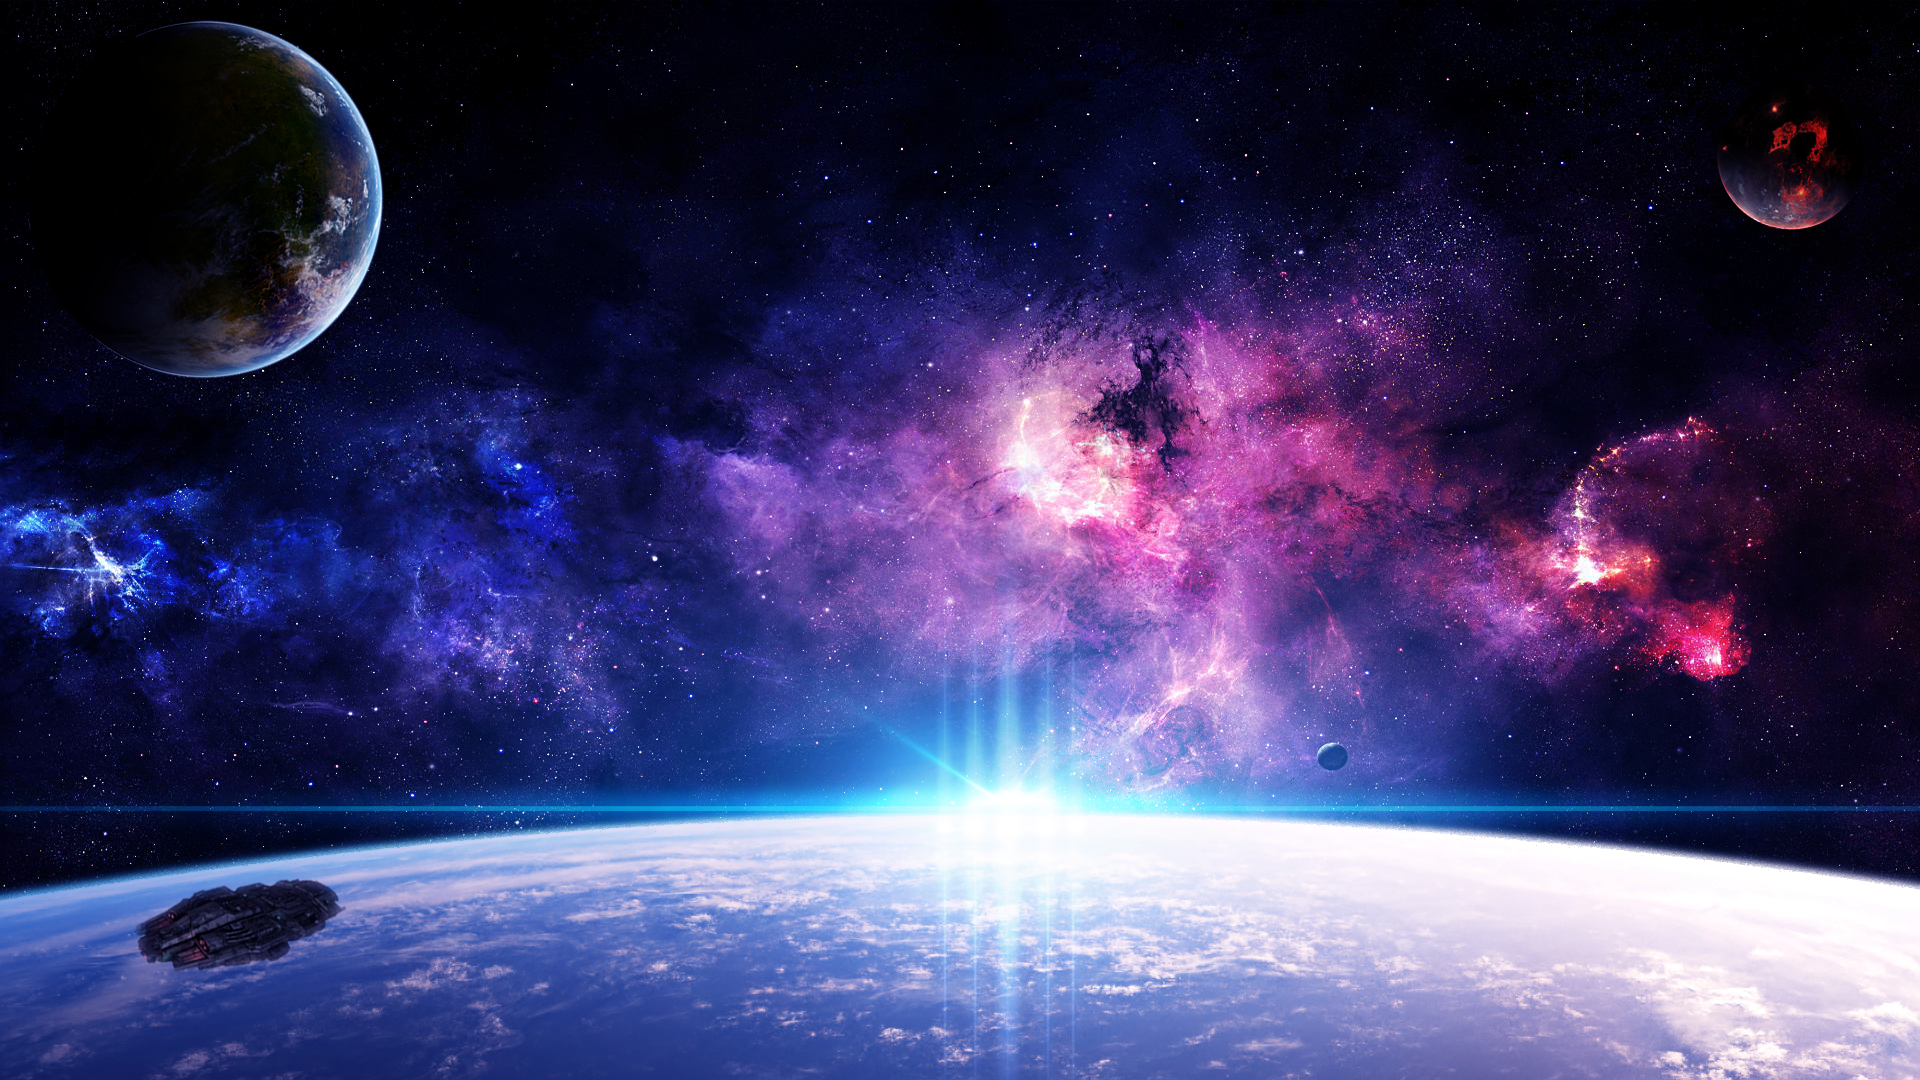 Download wallpaper 1920x1080 planet, space, outer space ...